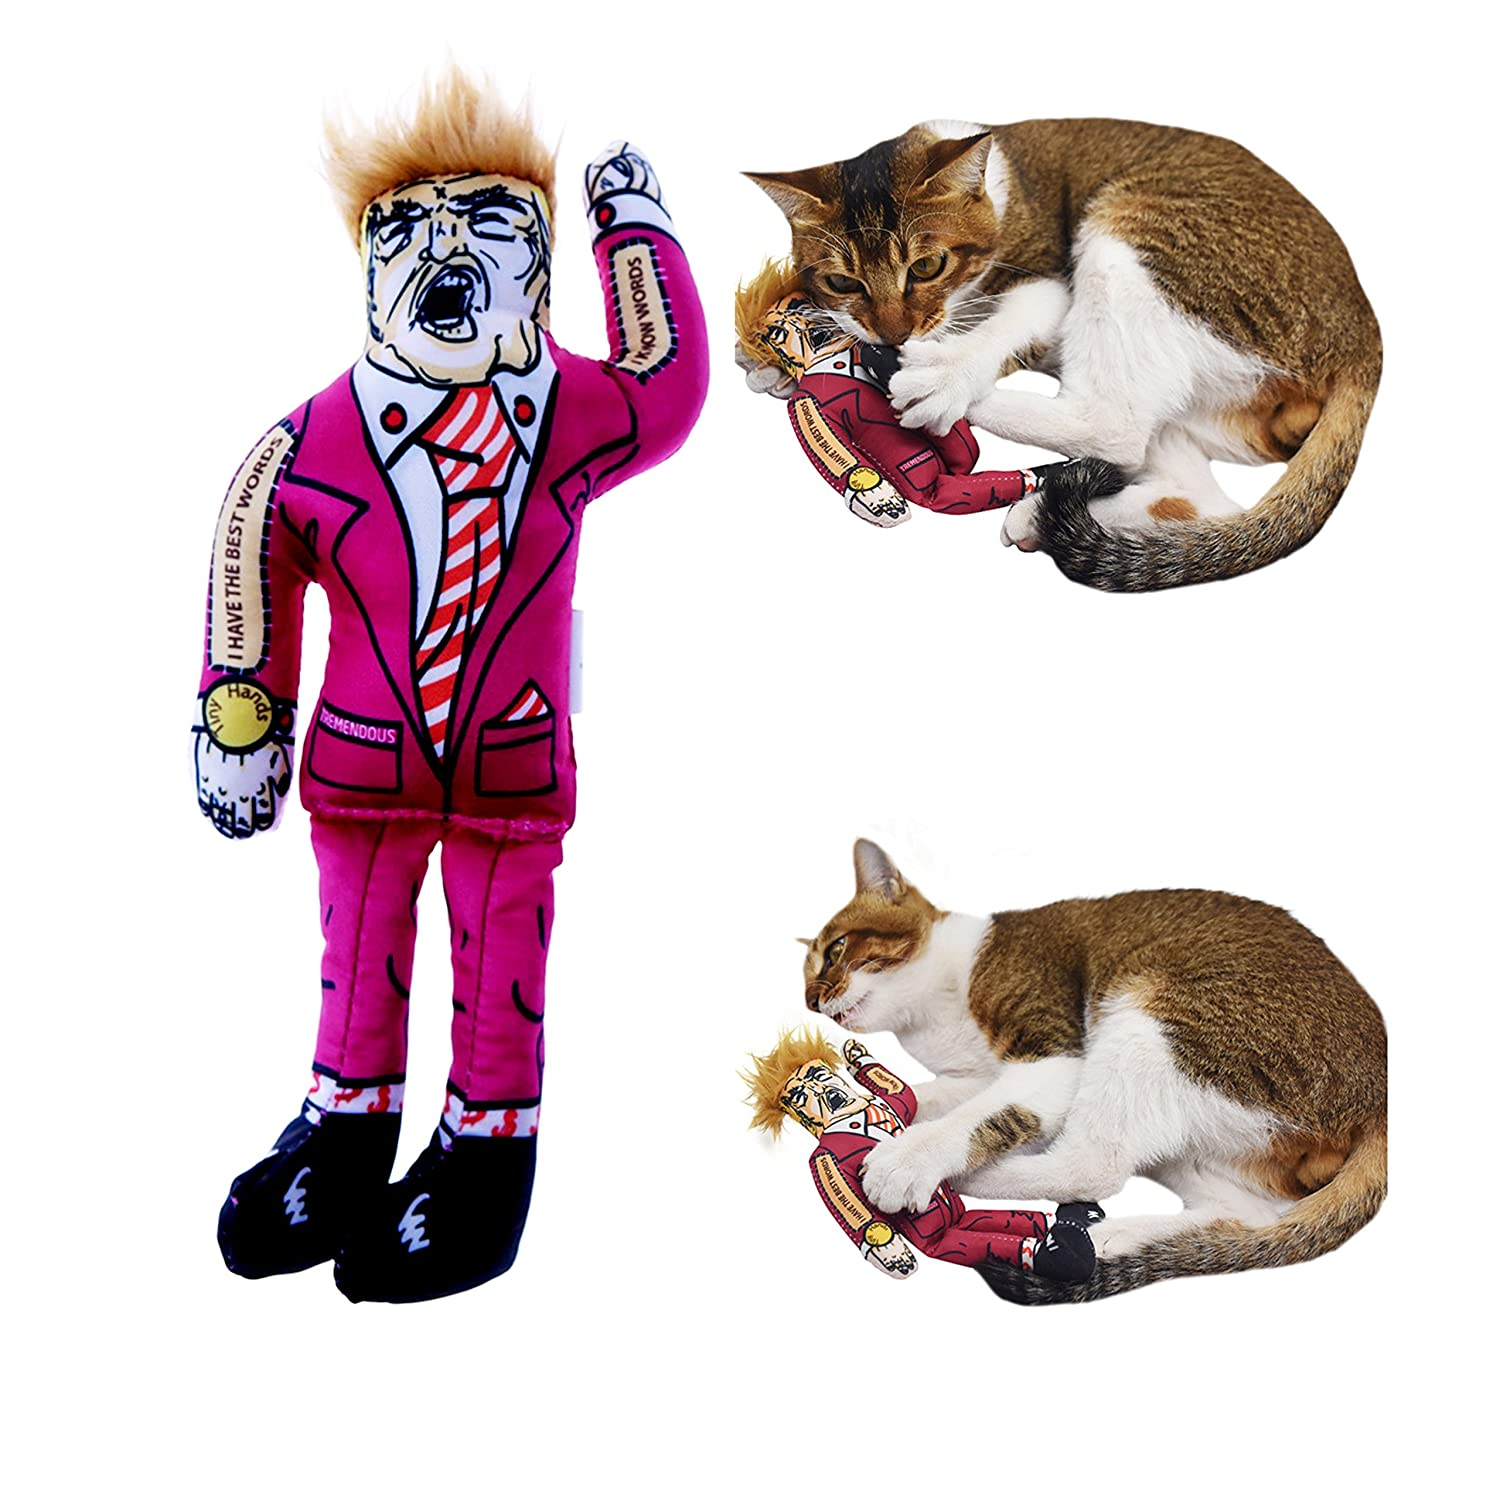 Cat Toys Catnip Interactive Cat Wand Cat Teaser Presidential Parody Donald Trump Corn Putin Cat Scratcher Kim Jung Un For Indoor Kitten by Pet Ezy